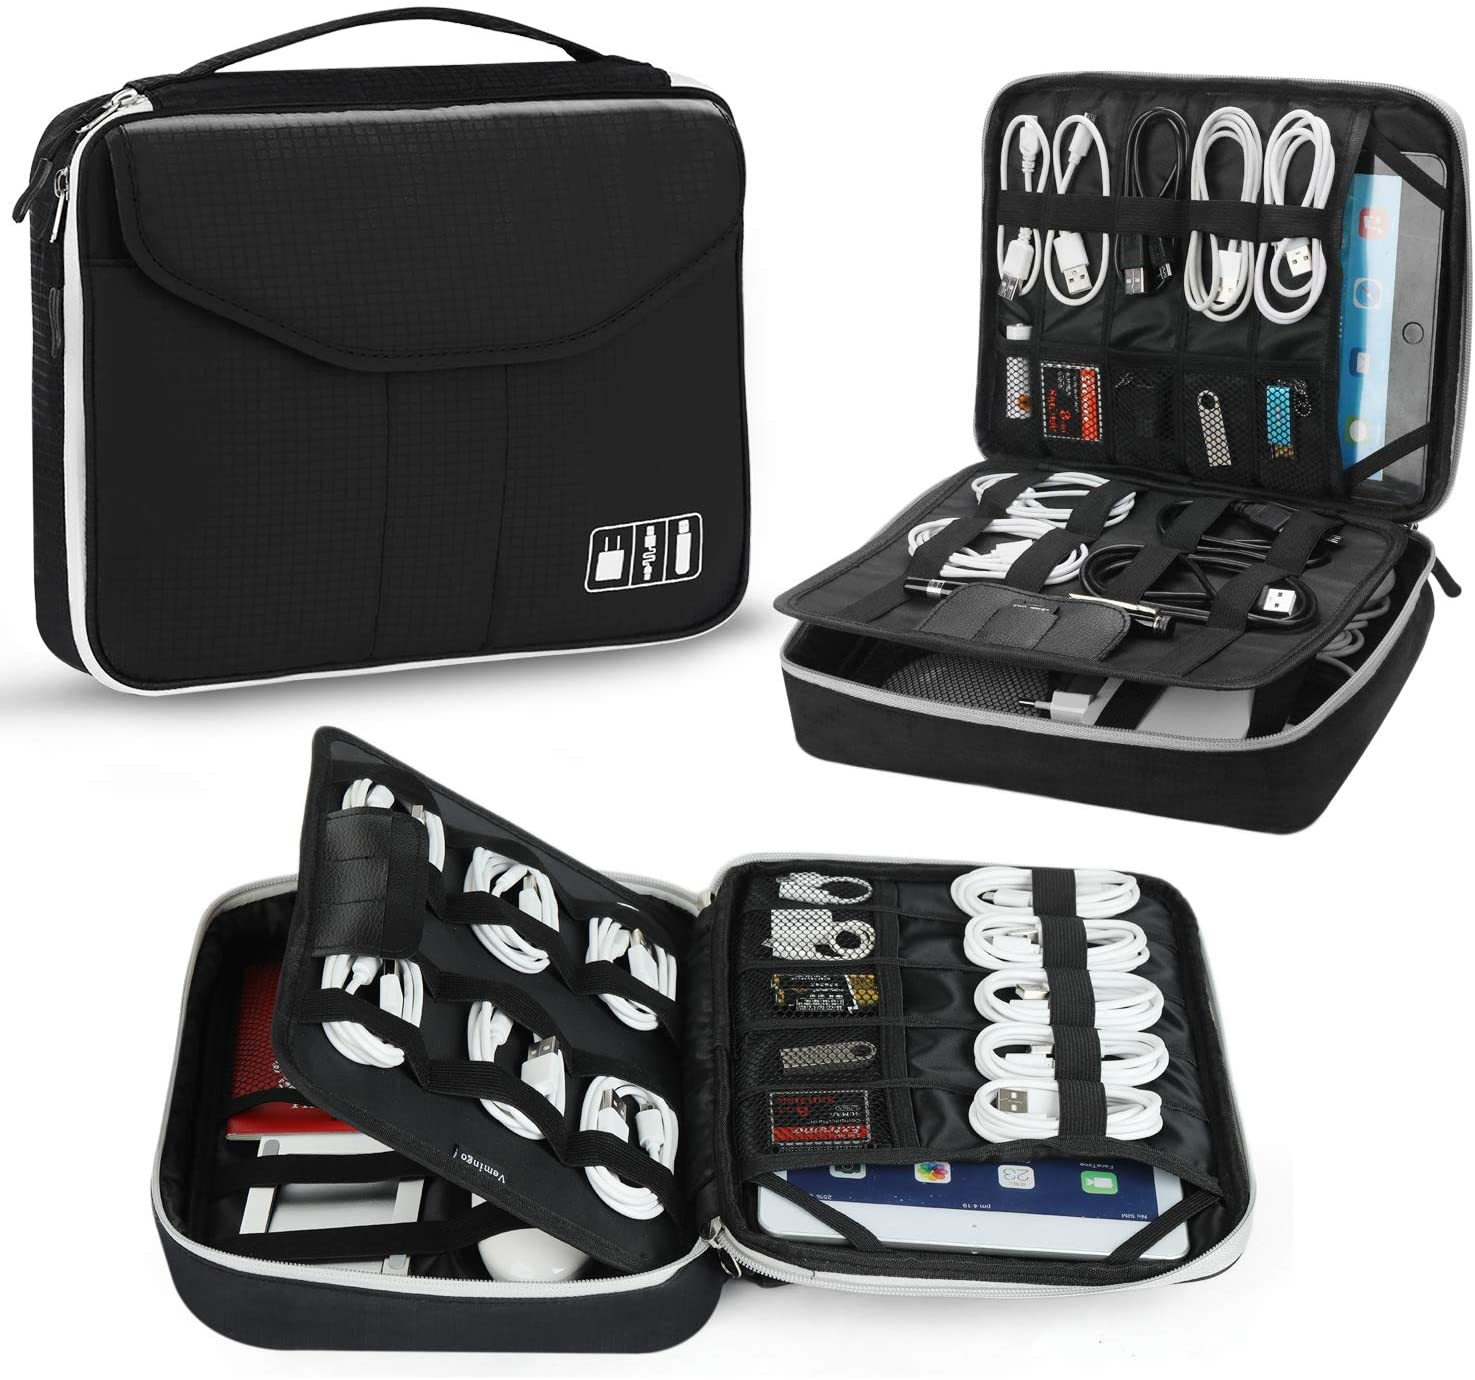 Jelly Comb Travel Organizer Bag Electronic Accessory Cases Cable Organizer Bag